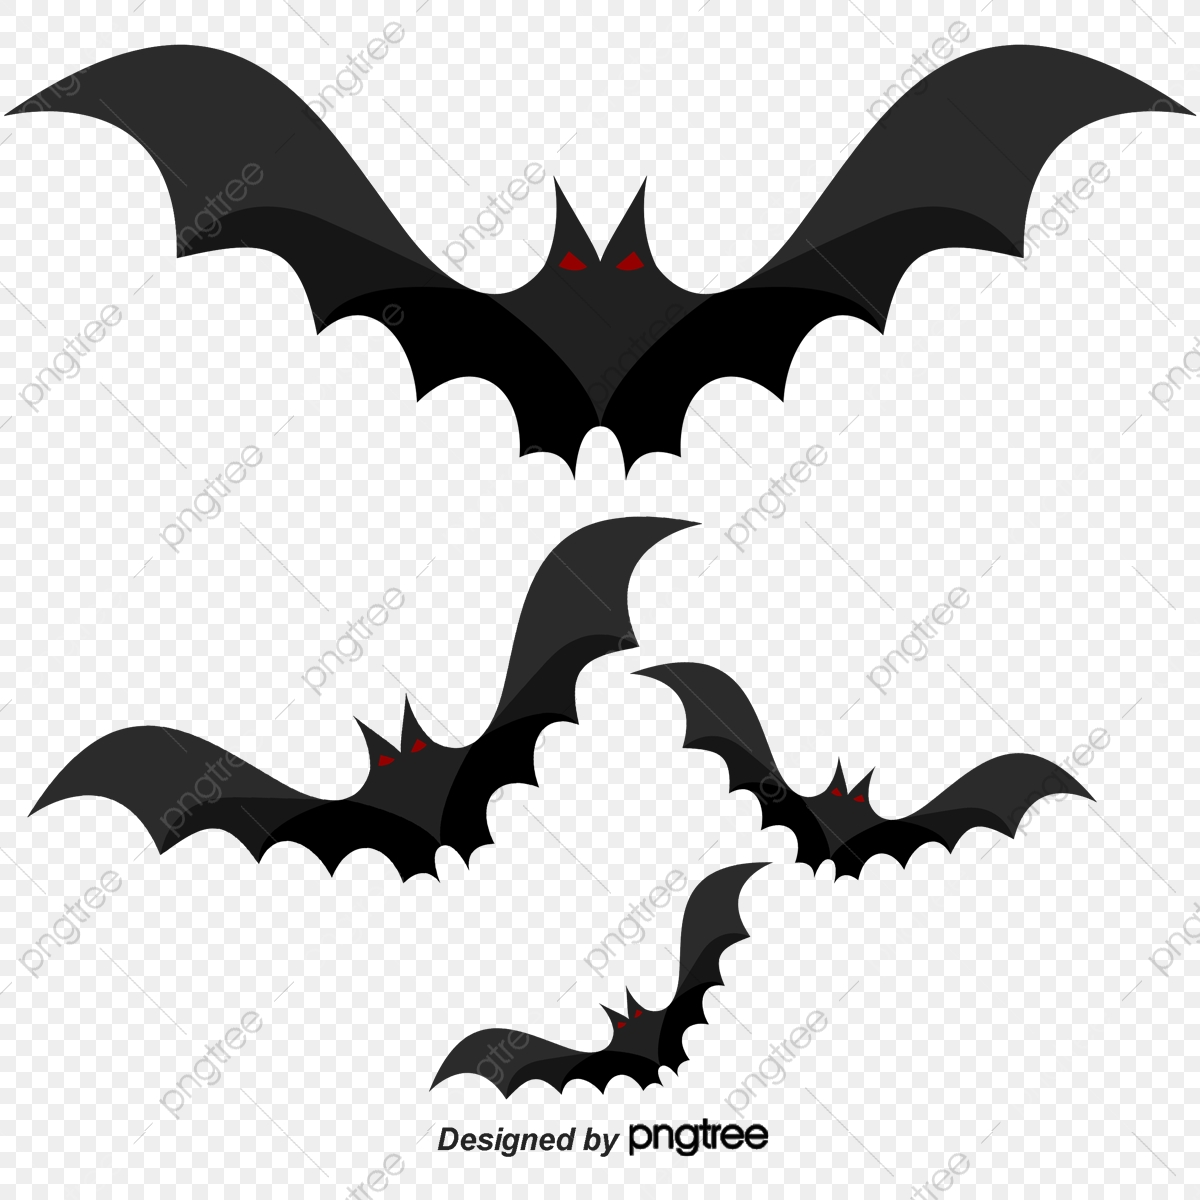 Bats clipart vector. Bat halloween png and